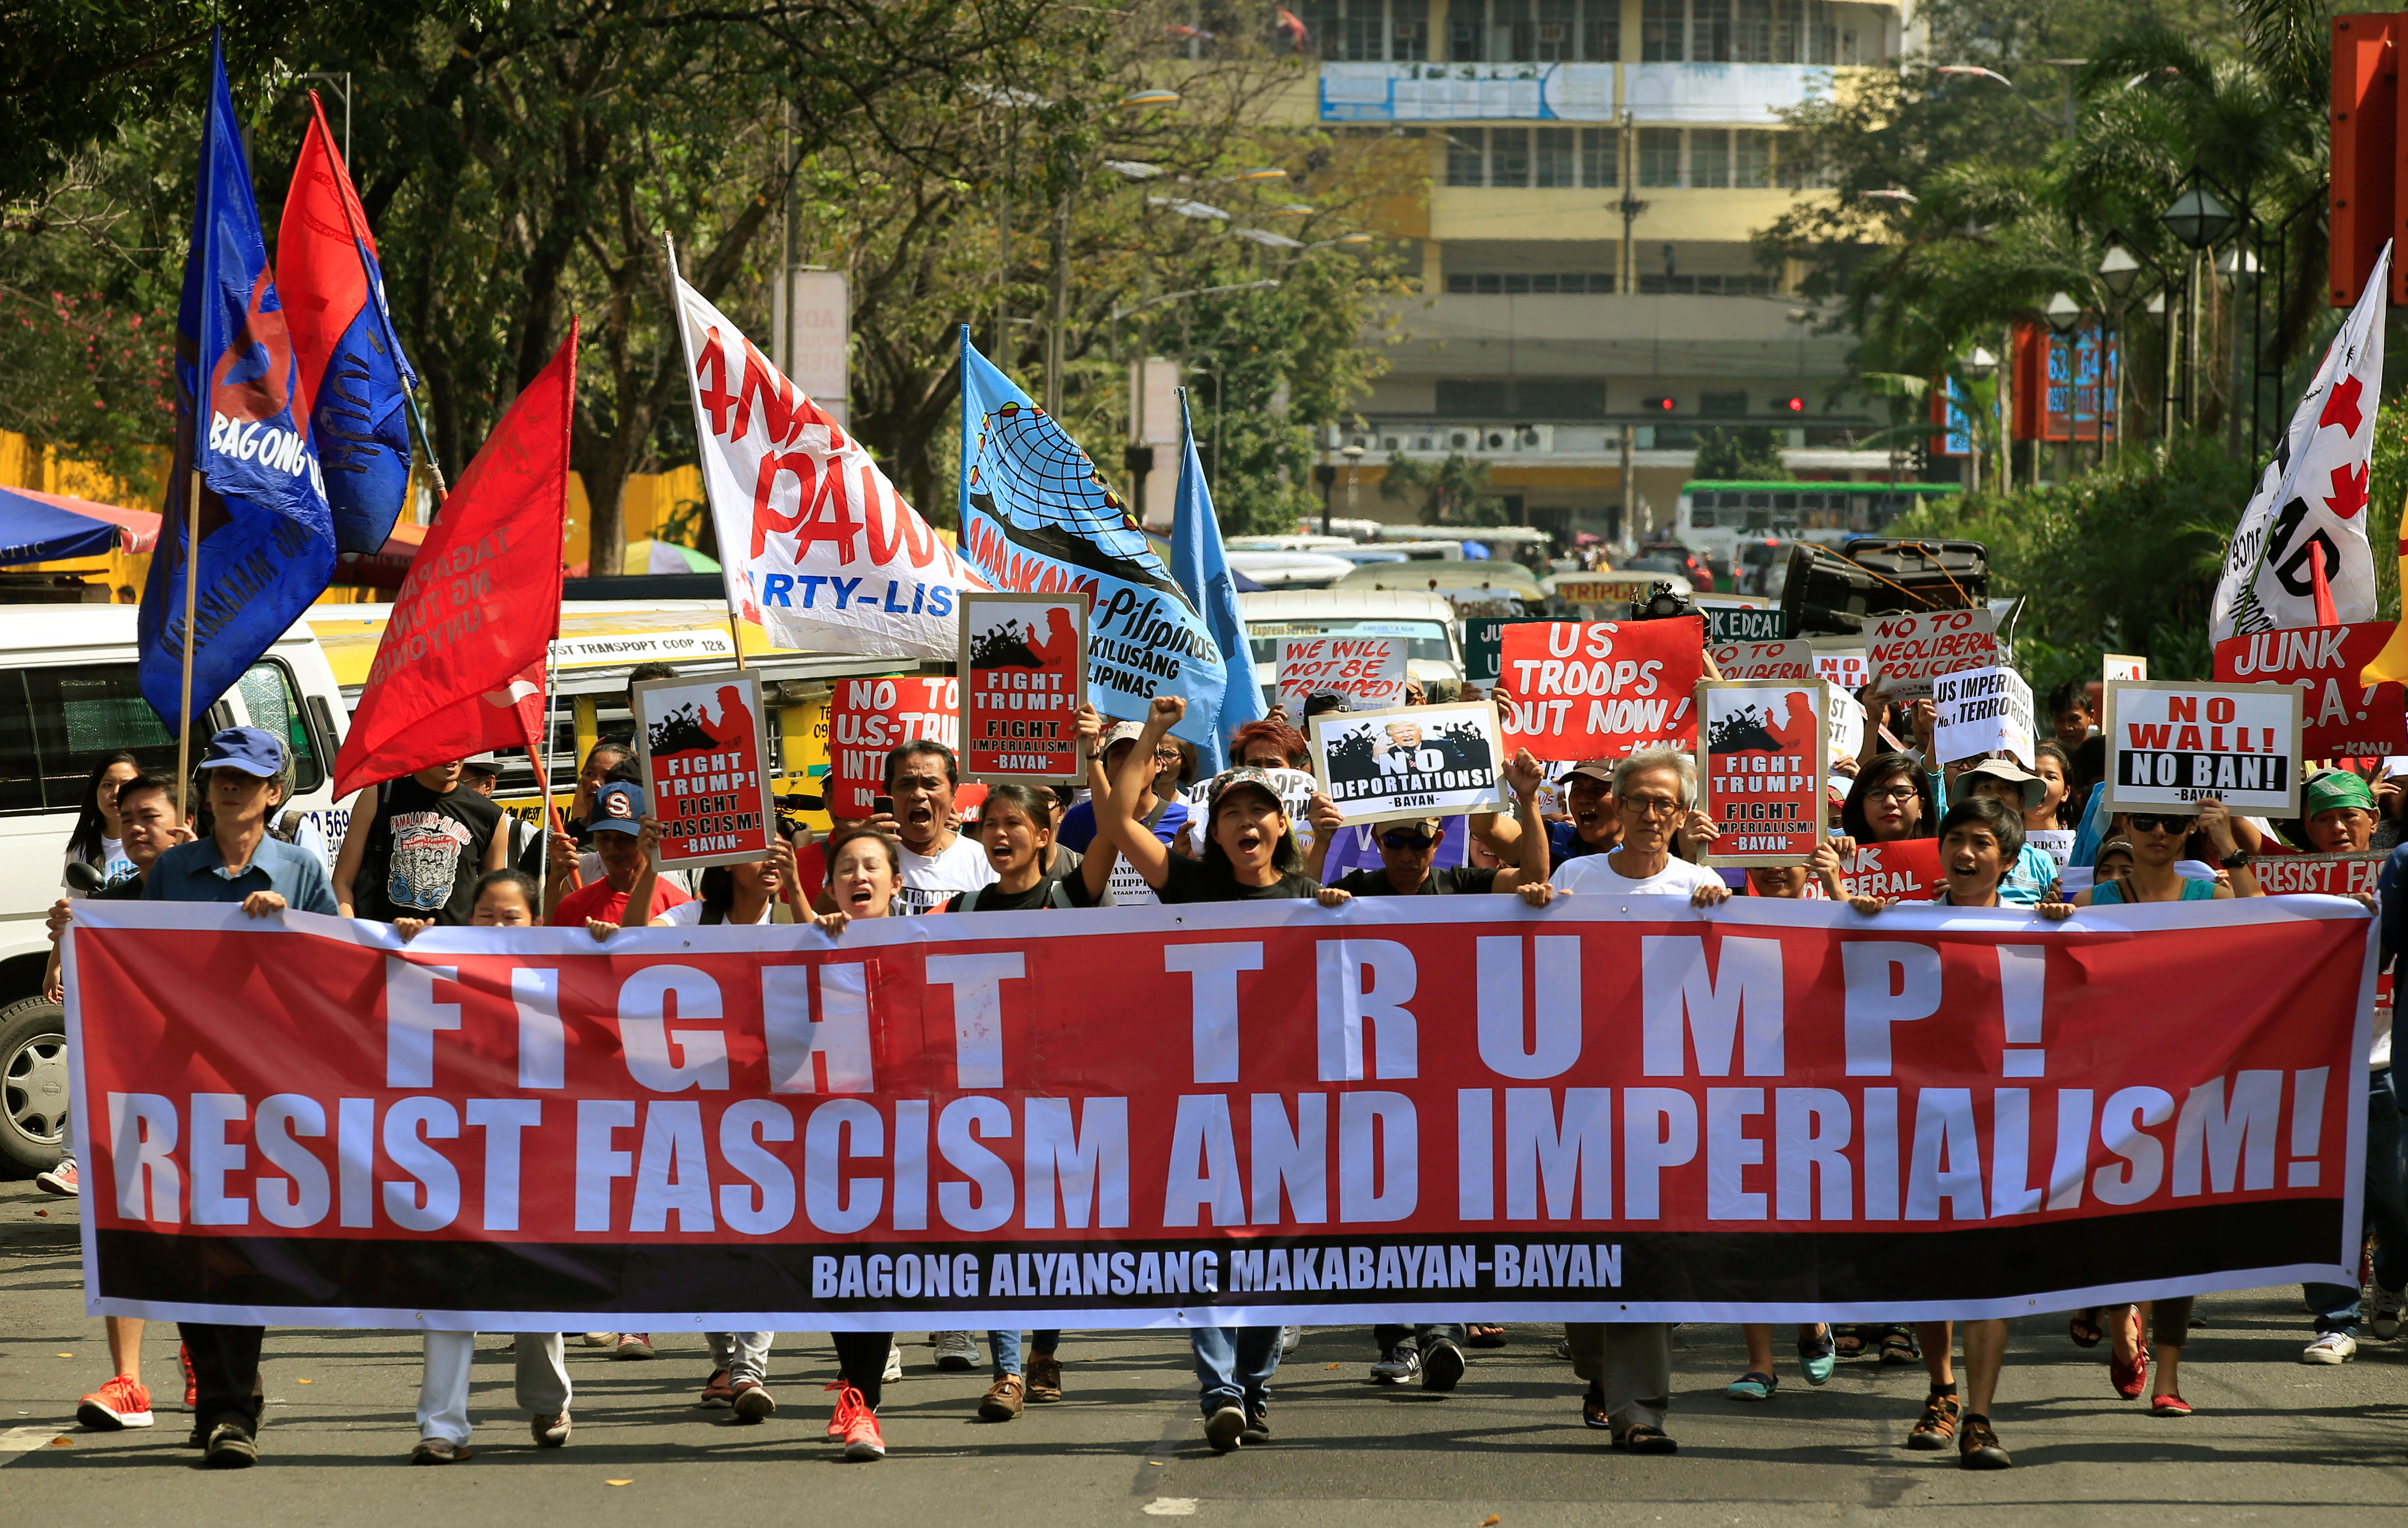 Filipino activists hold banner and placards while marching towards the U.S. embassy during a protest against U.S. President Donald Trump's immigration policies, in metro Manila February 4, 2017. REUTERS/Romeo Ranoco - RTX2ZKKK